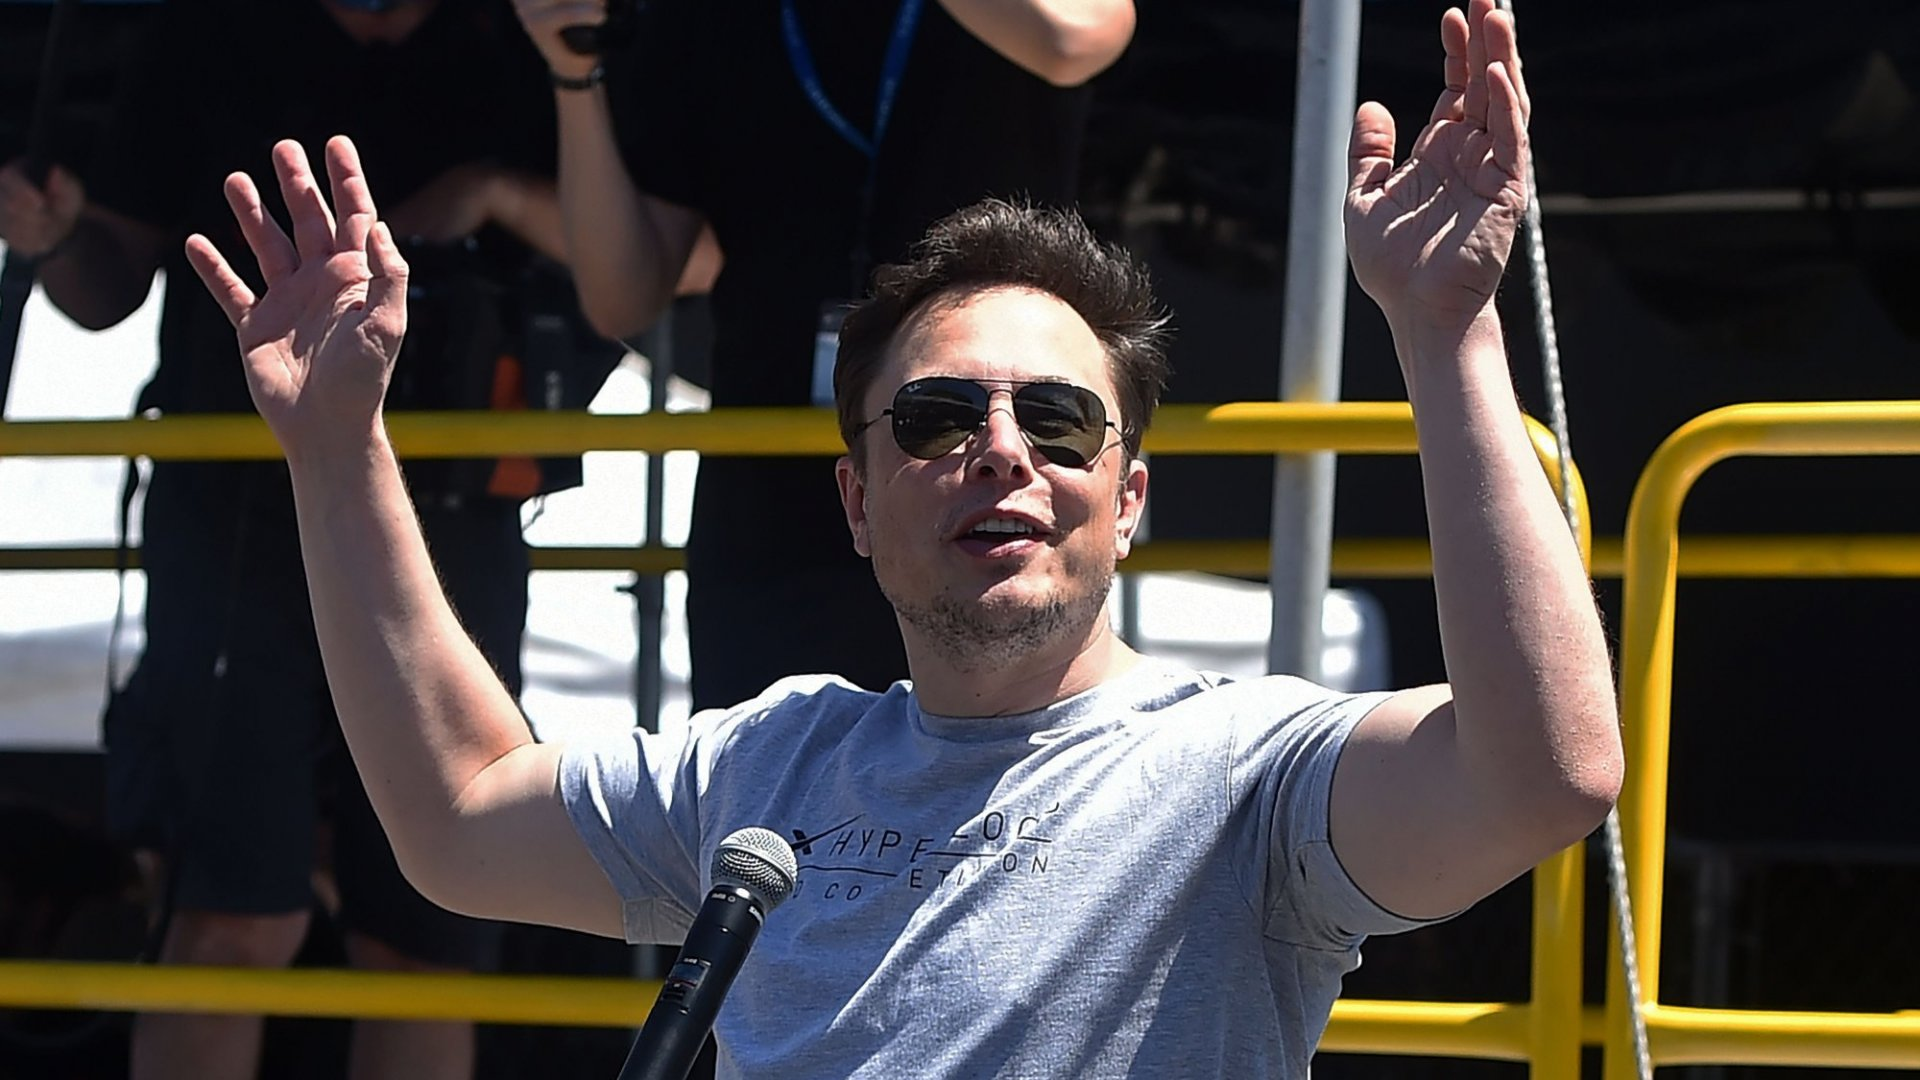 Elon Musk Puts His Foot in His Mouth Again: Time for Another Tesla CEO